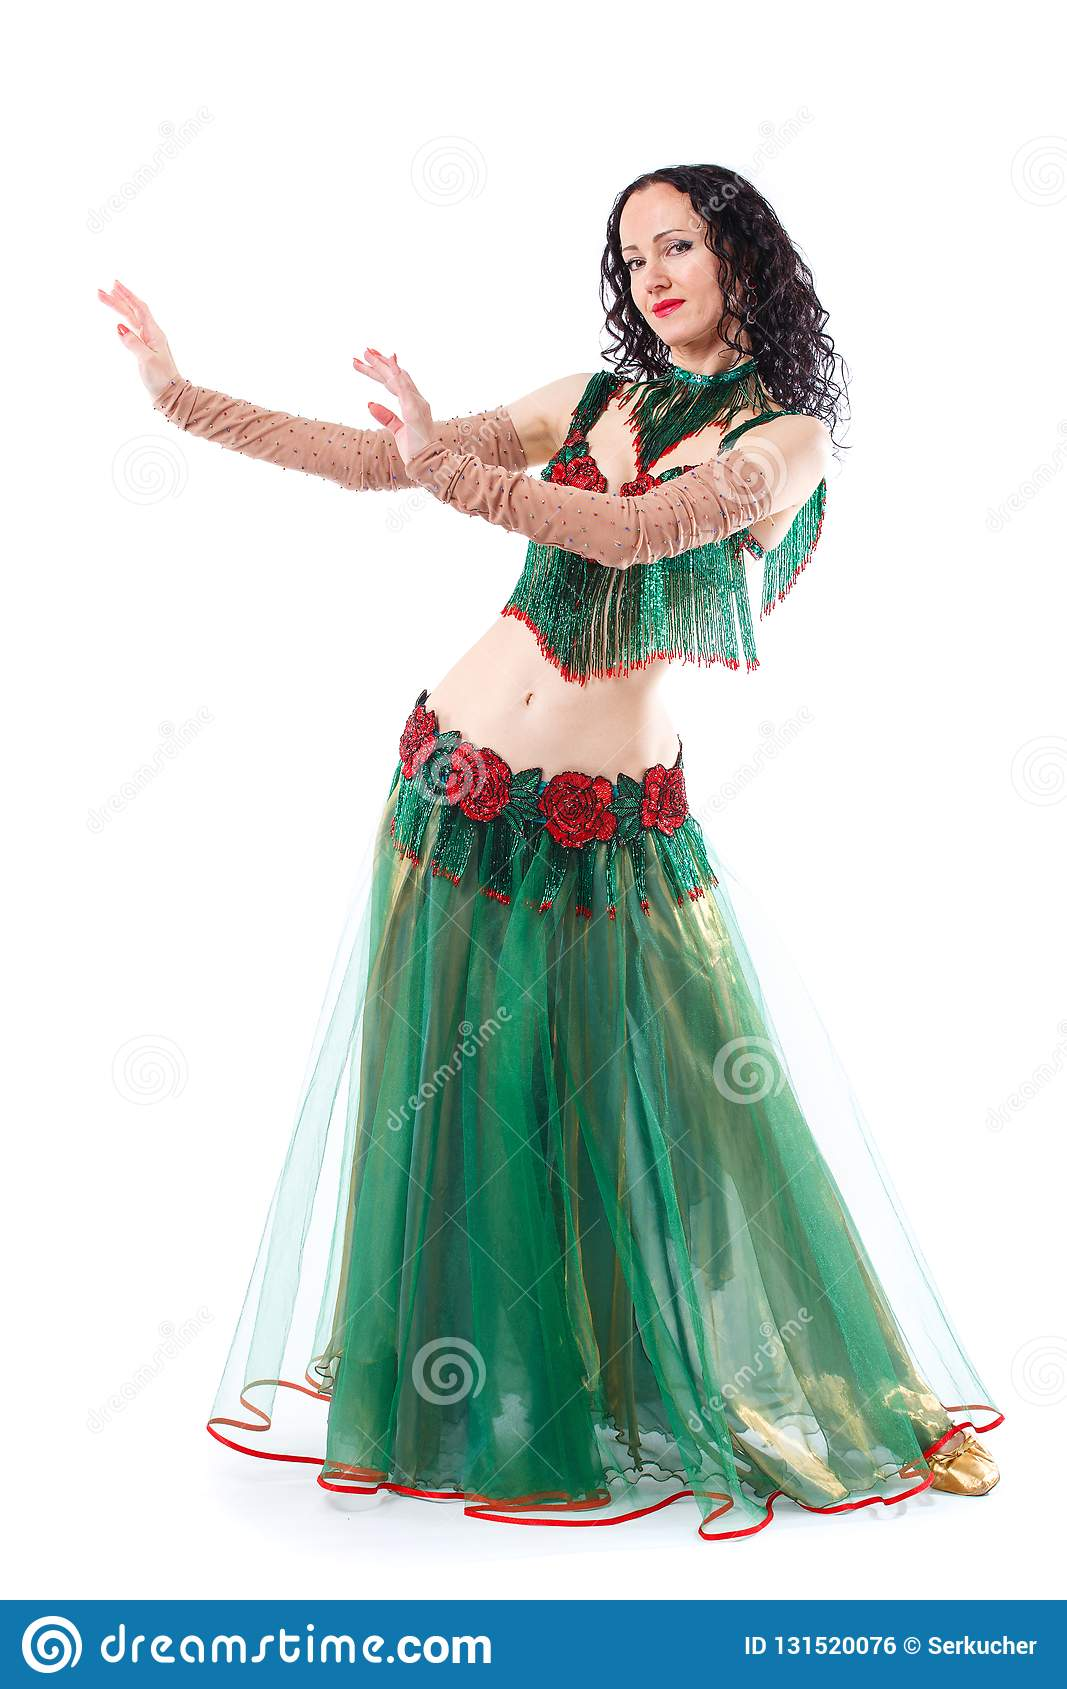 15c8ef10a girl dancing belly dance. During the dance the young girl stopped. Isolated  on a white background